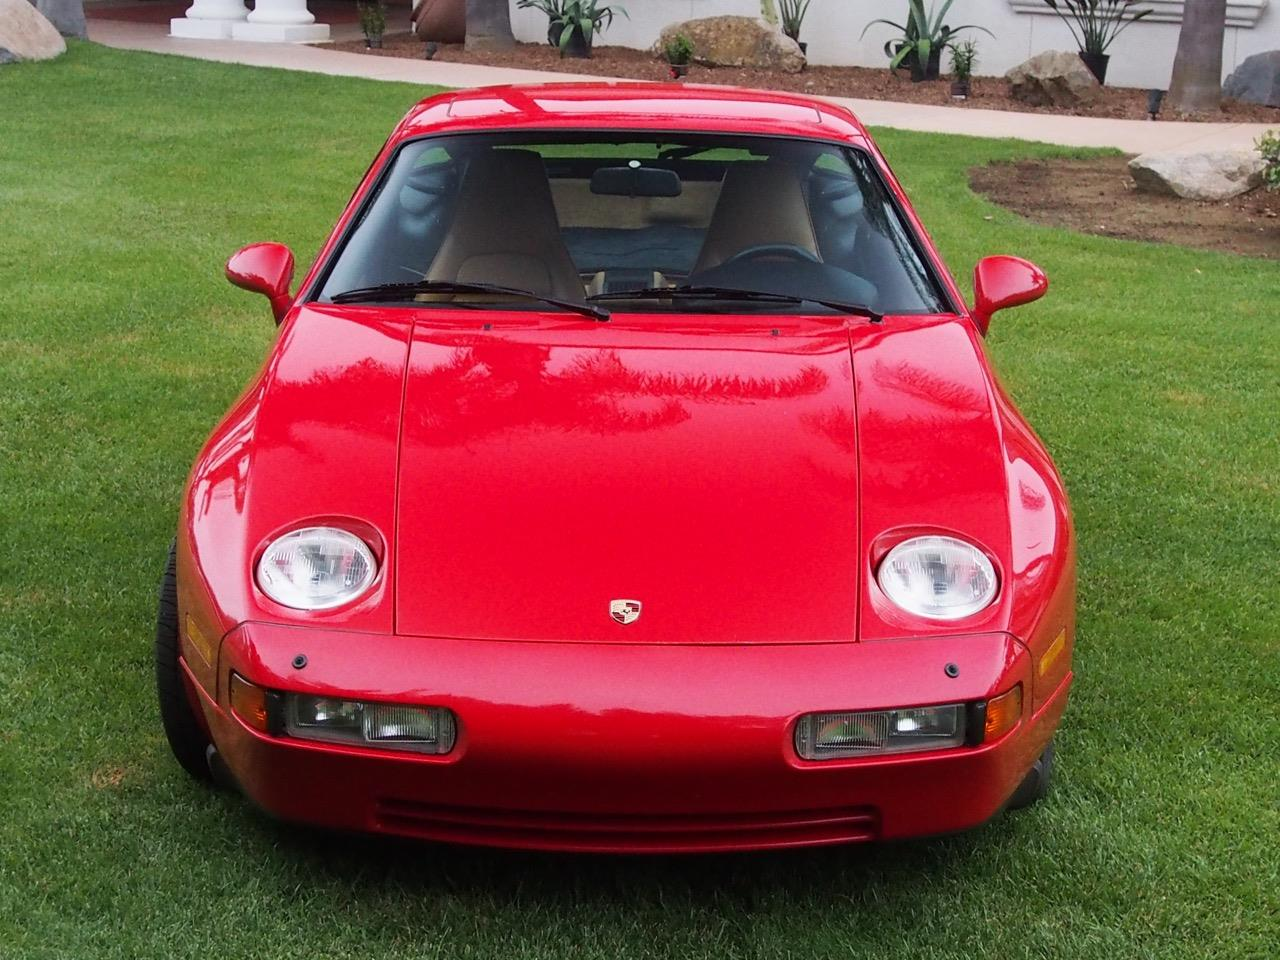 1988 Porsche 928 for sale in Carlsbad, CA – photo 3